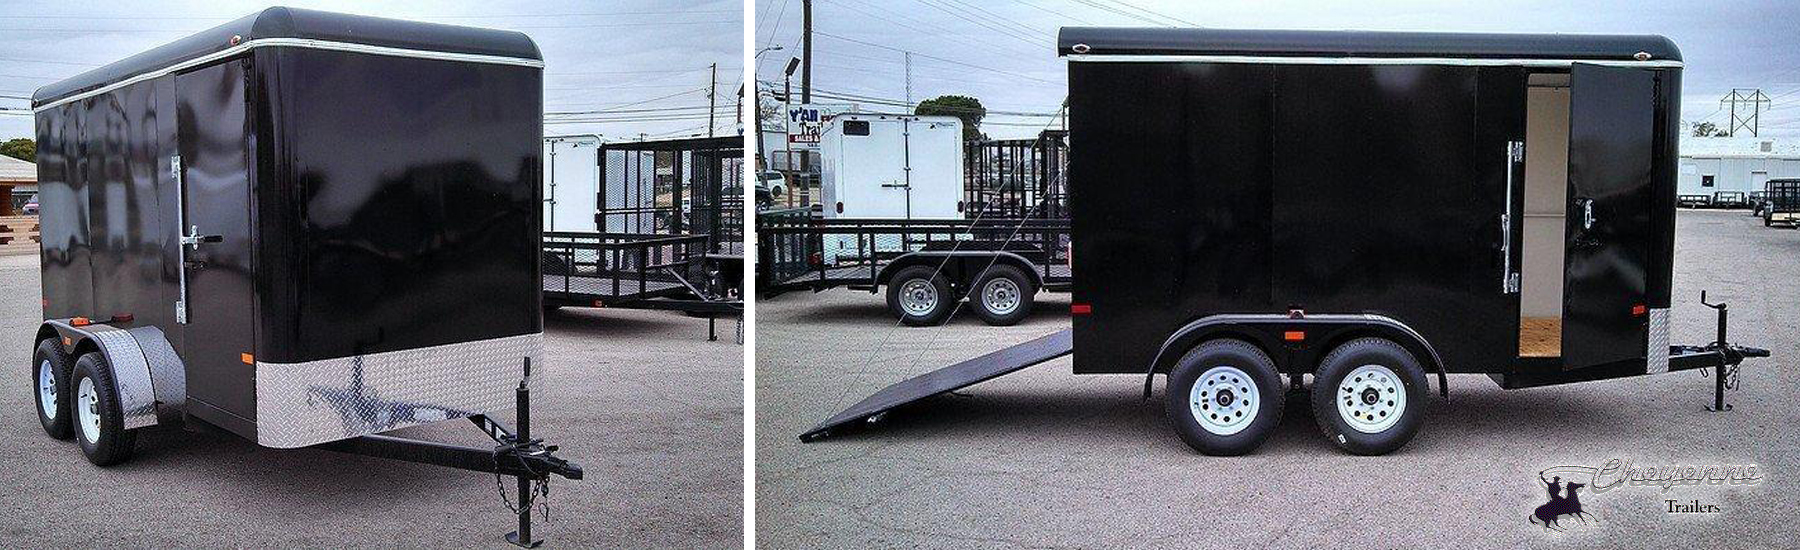 Home | Trailers in Midland Odessa TX | Y'All Haul Gooseneck